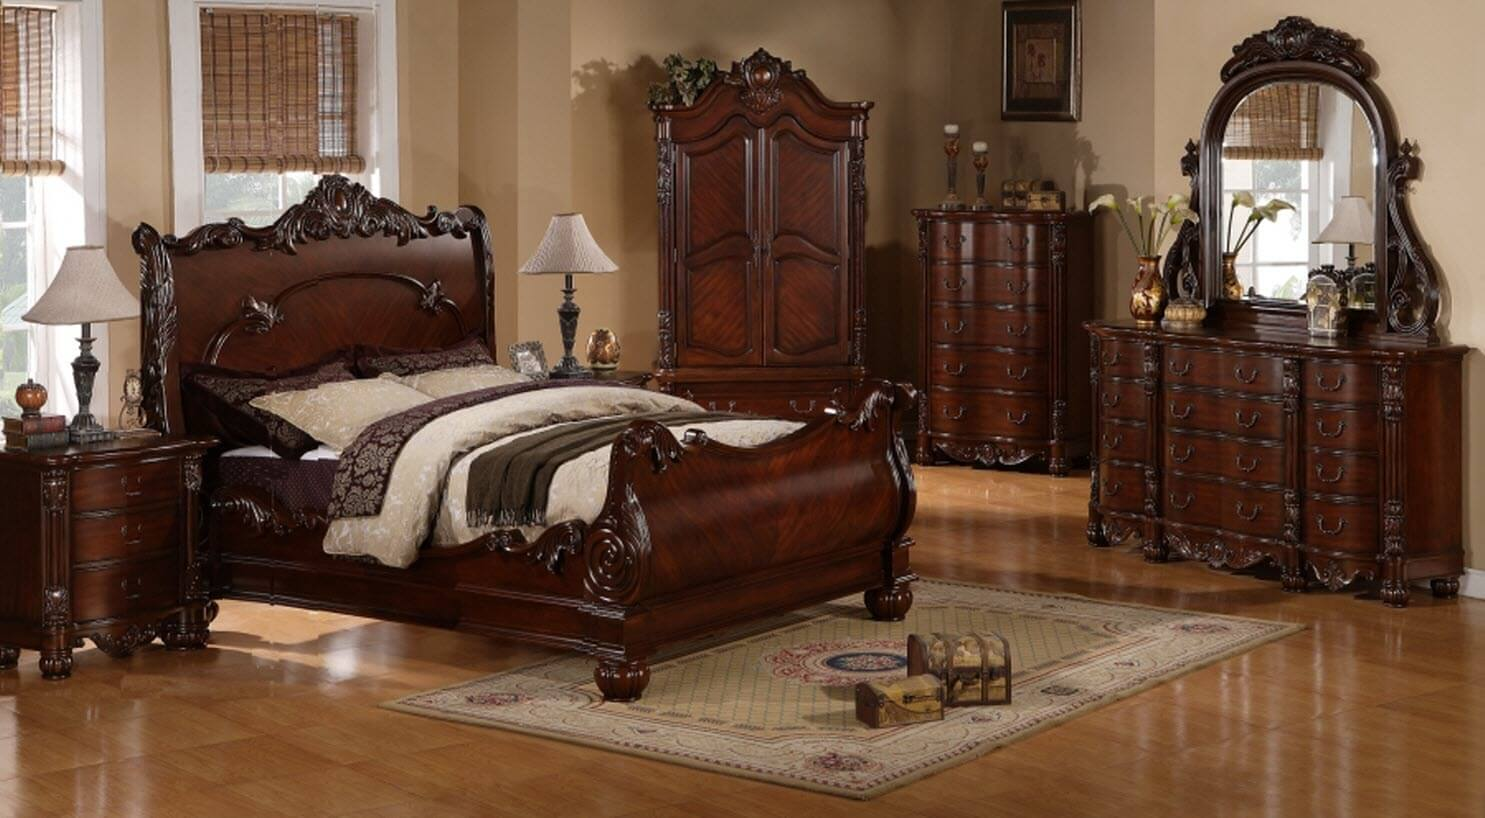 Regal Cherry 5 Piece Bedroom Set | Bedroom Furniture Sets